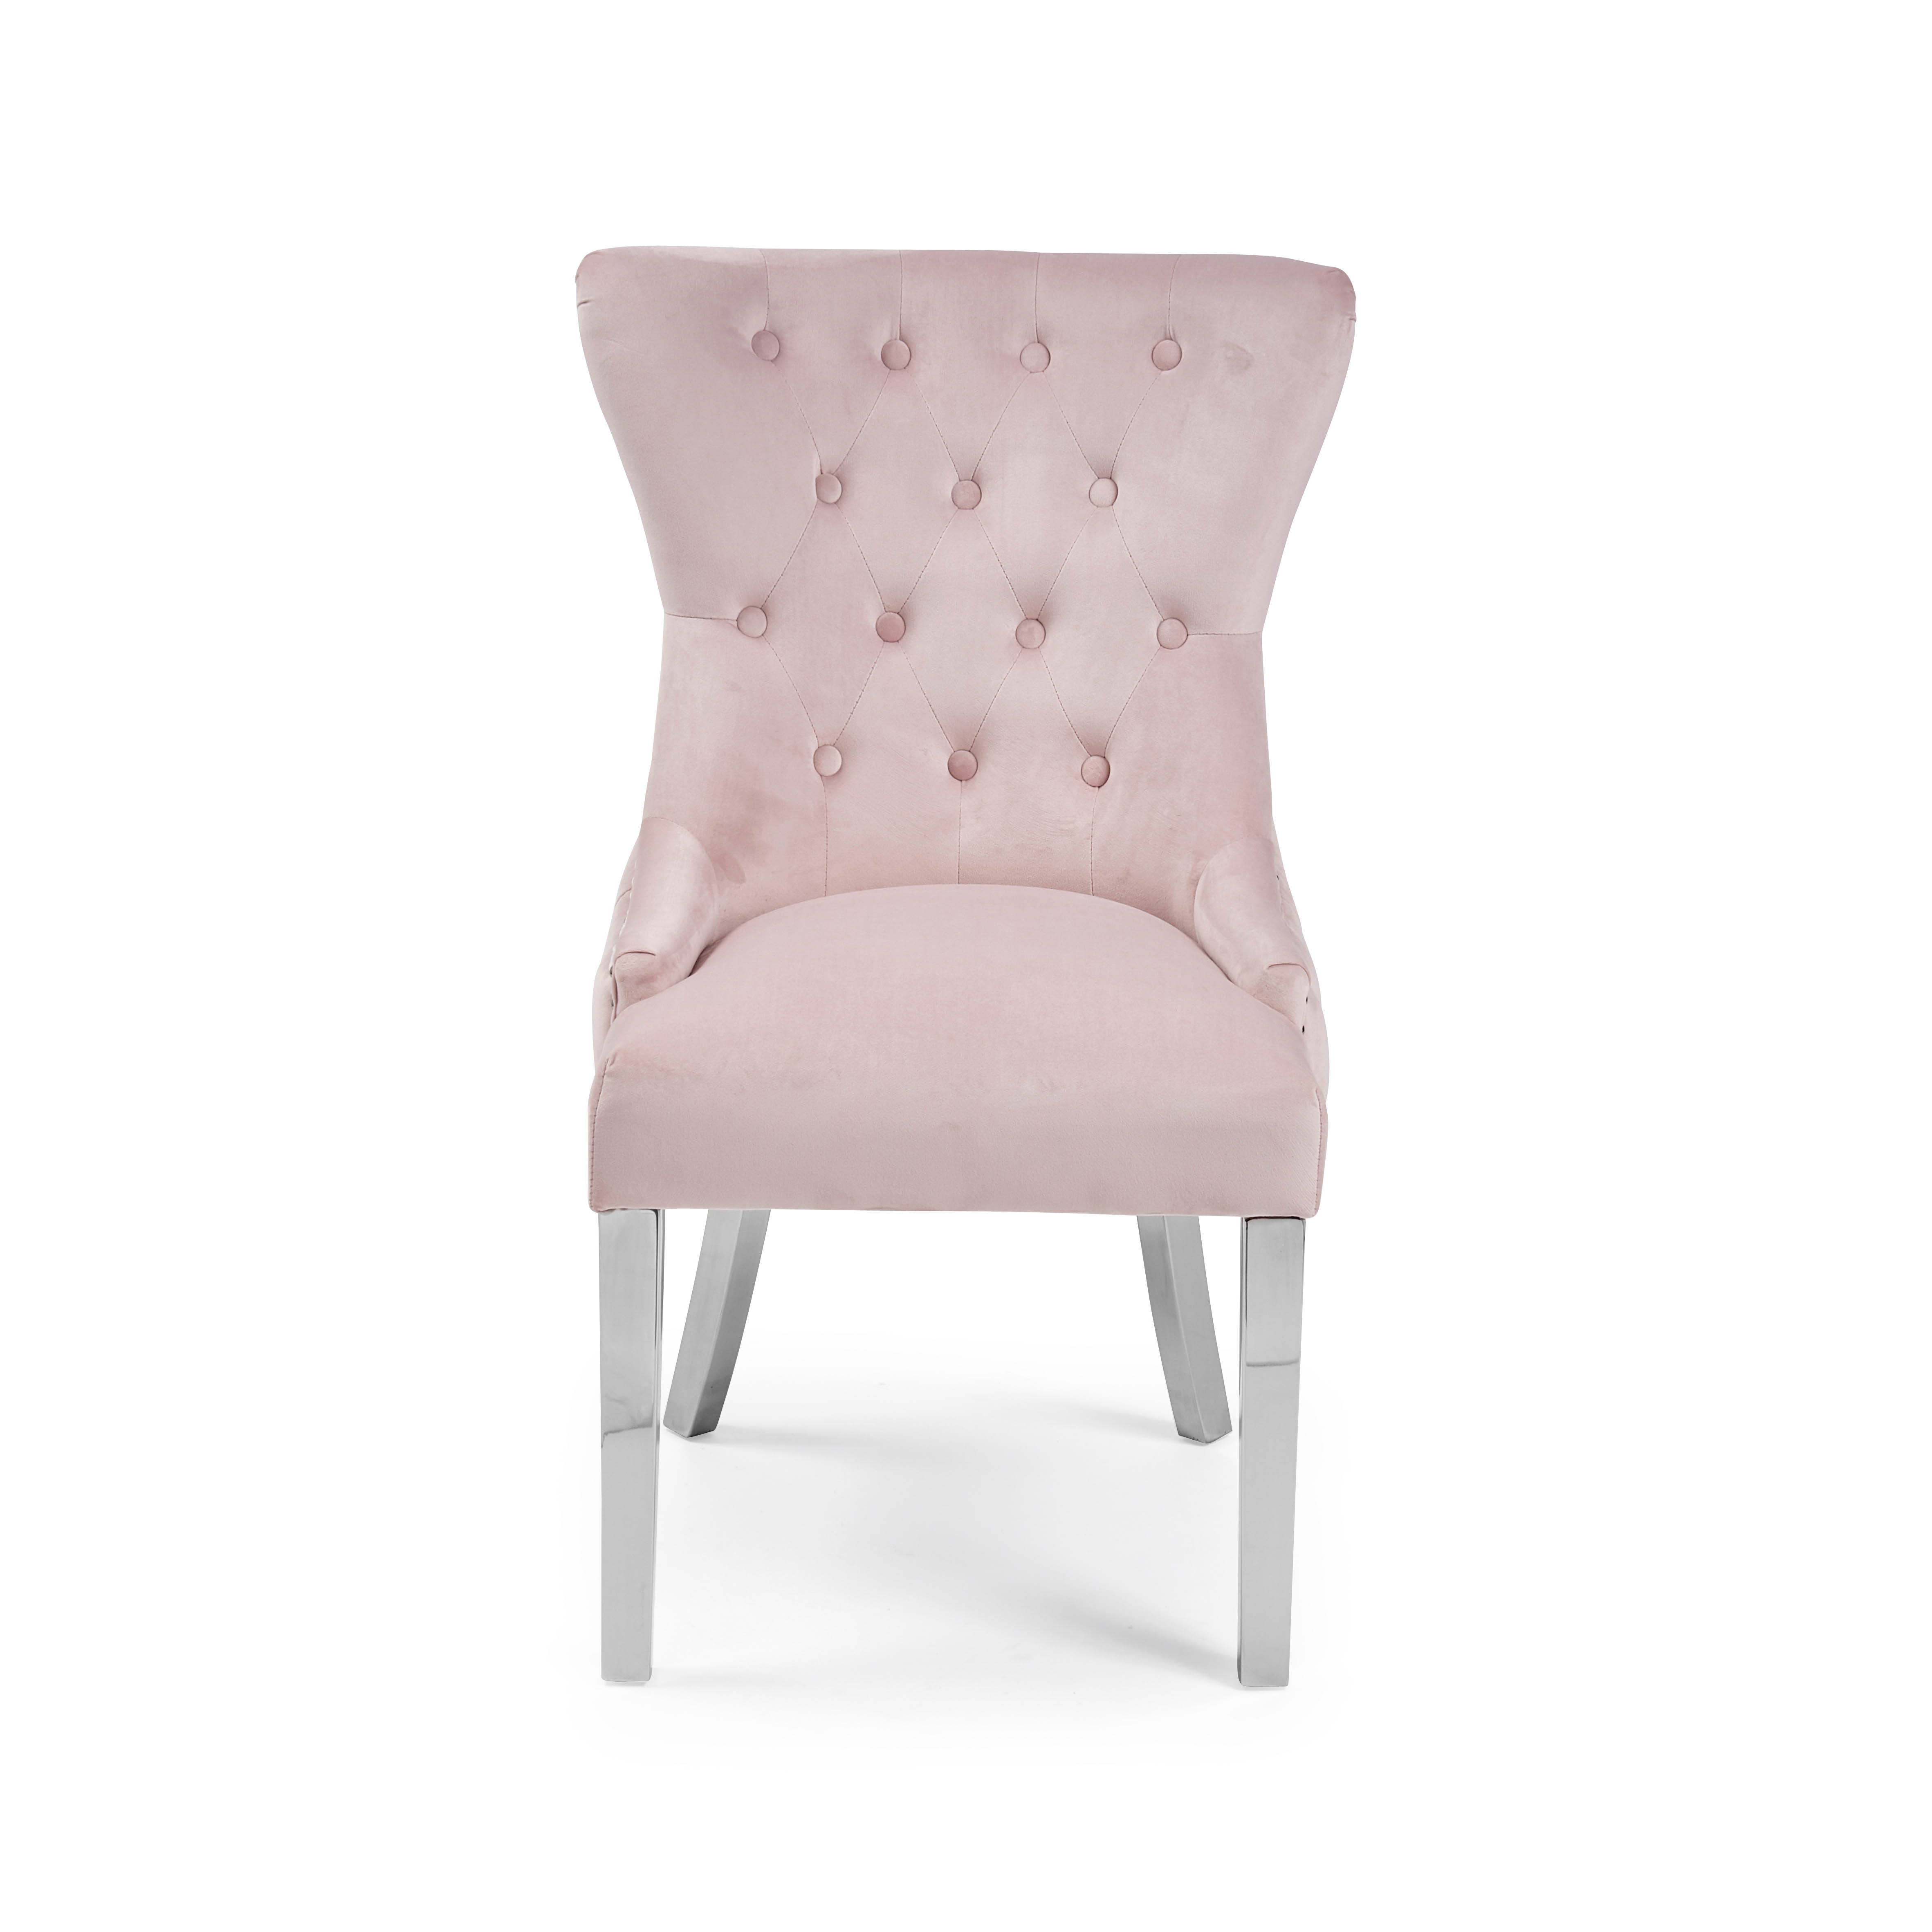 Knightsbridge Buttoned Brushed Velvet Dining Chair with Polished Stainless Steel Legs – Pink